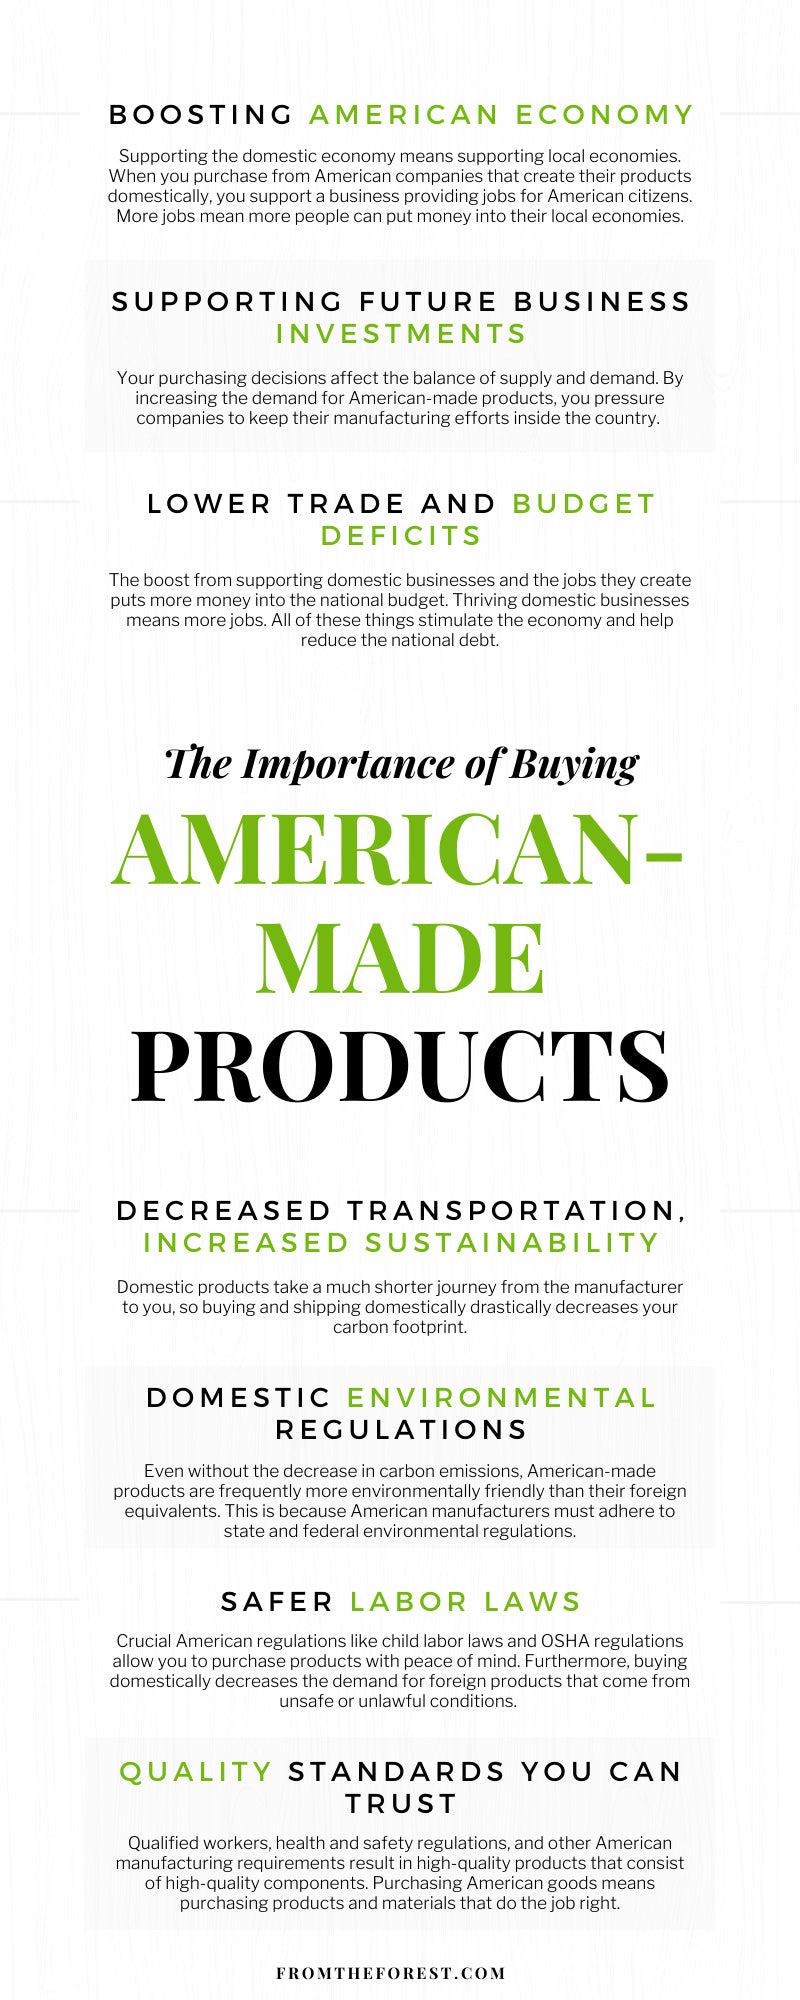 The Importance of Buying American-Made Products